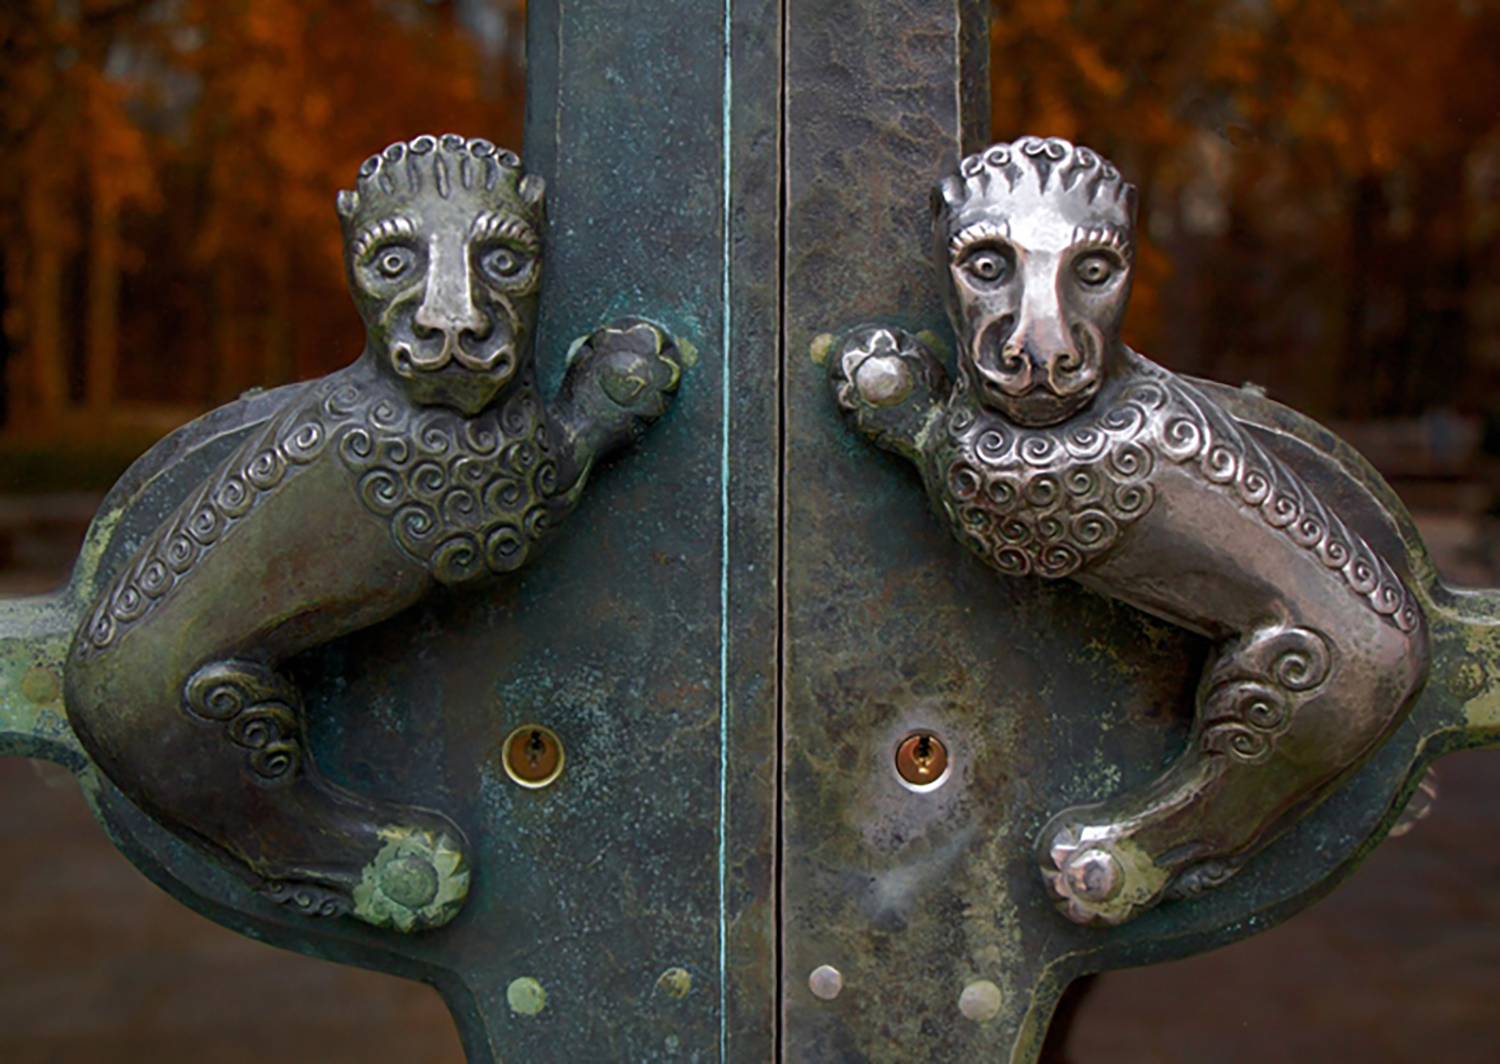 Figure 9: The door handles for the everyday entrance to Glencairn are lionesque-style creatures made from Monel. The right-hand one has a different patination because it is the side that opens and is therefore touched more frequently.